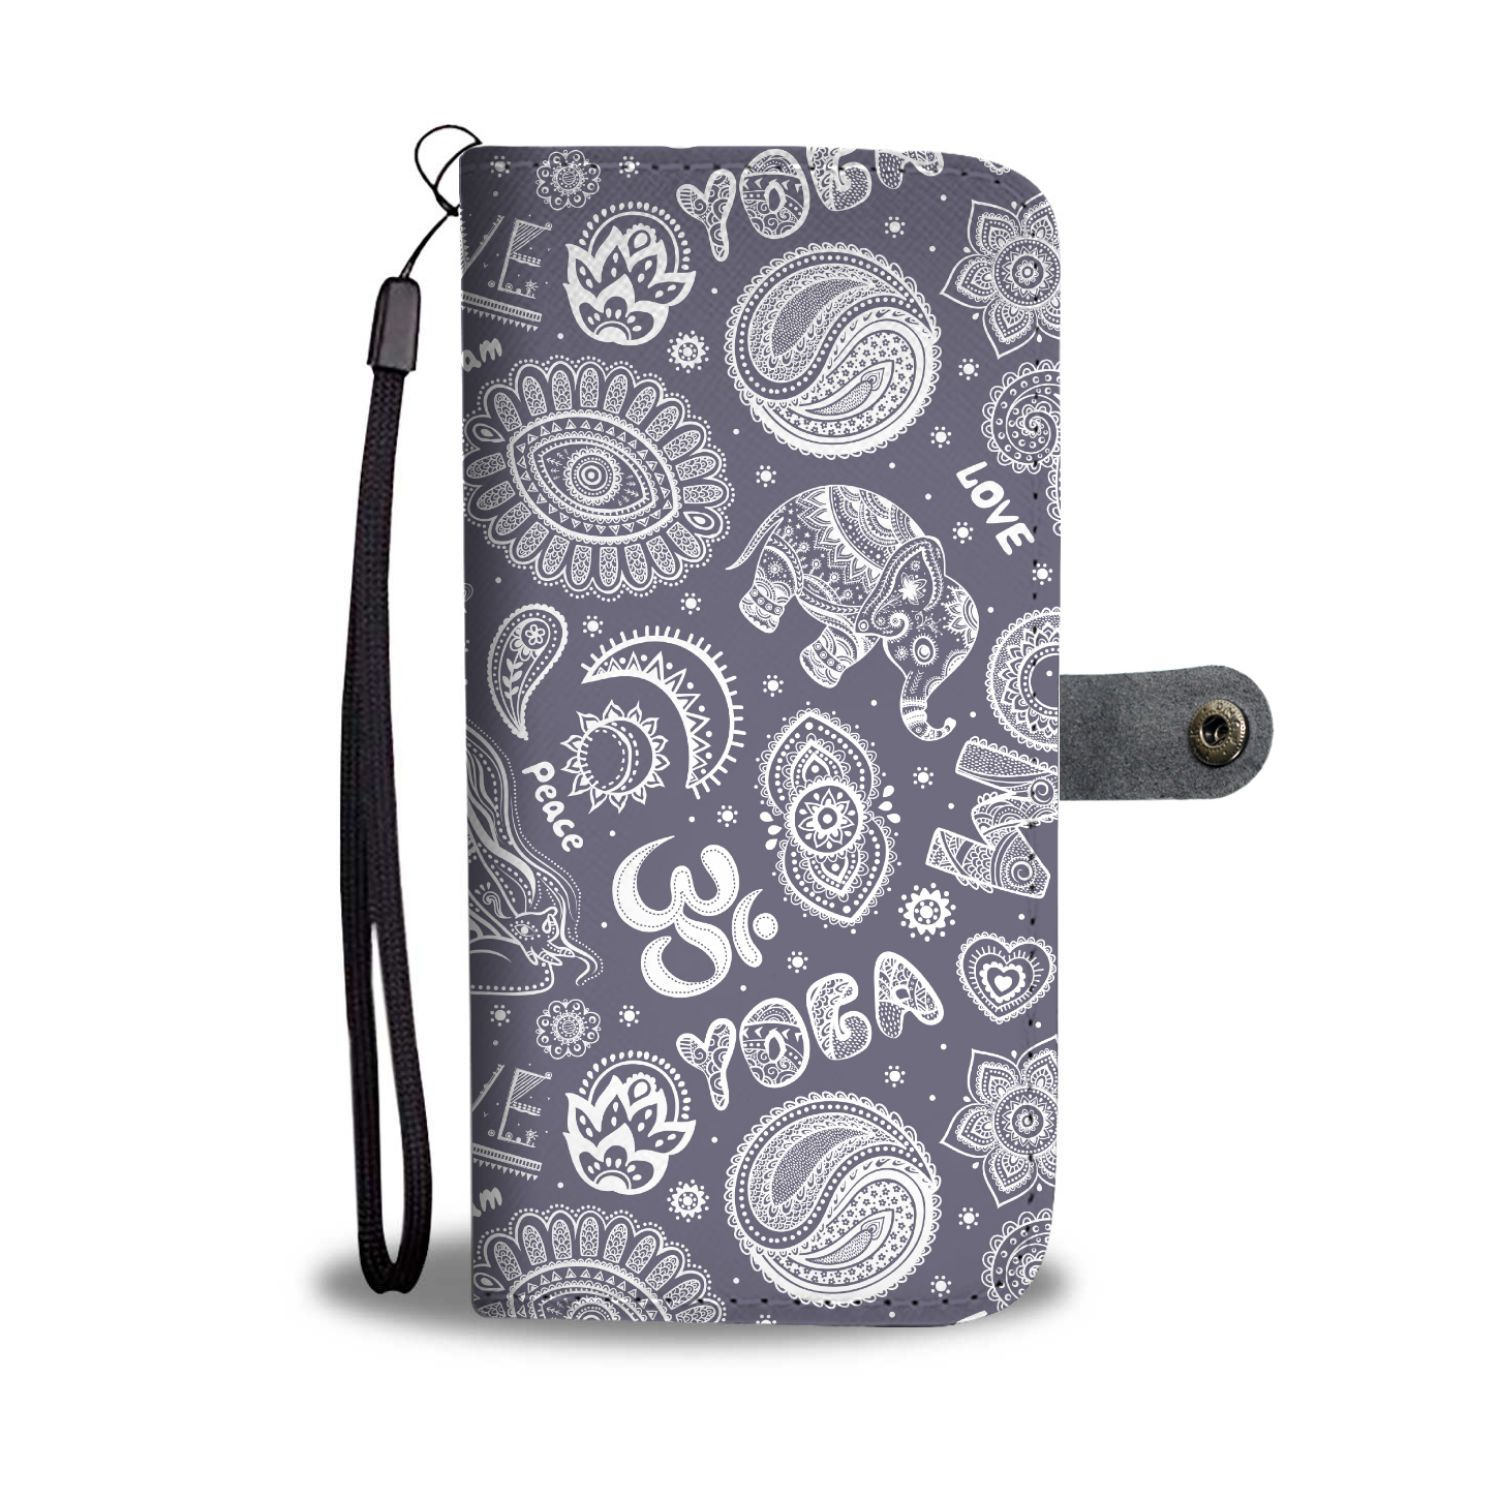 Yoga, Om, Lucky Elephant, Lotus, Buddhist Design Phone Wallet Case